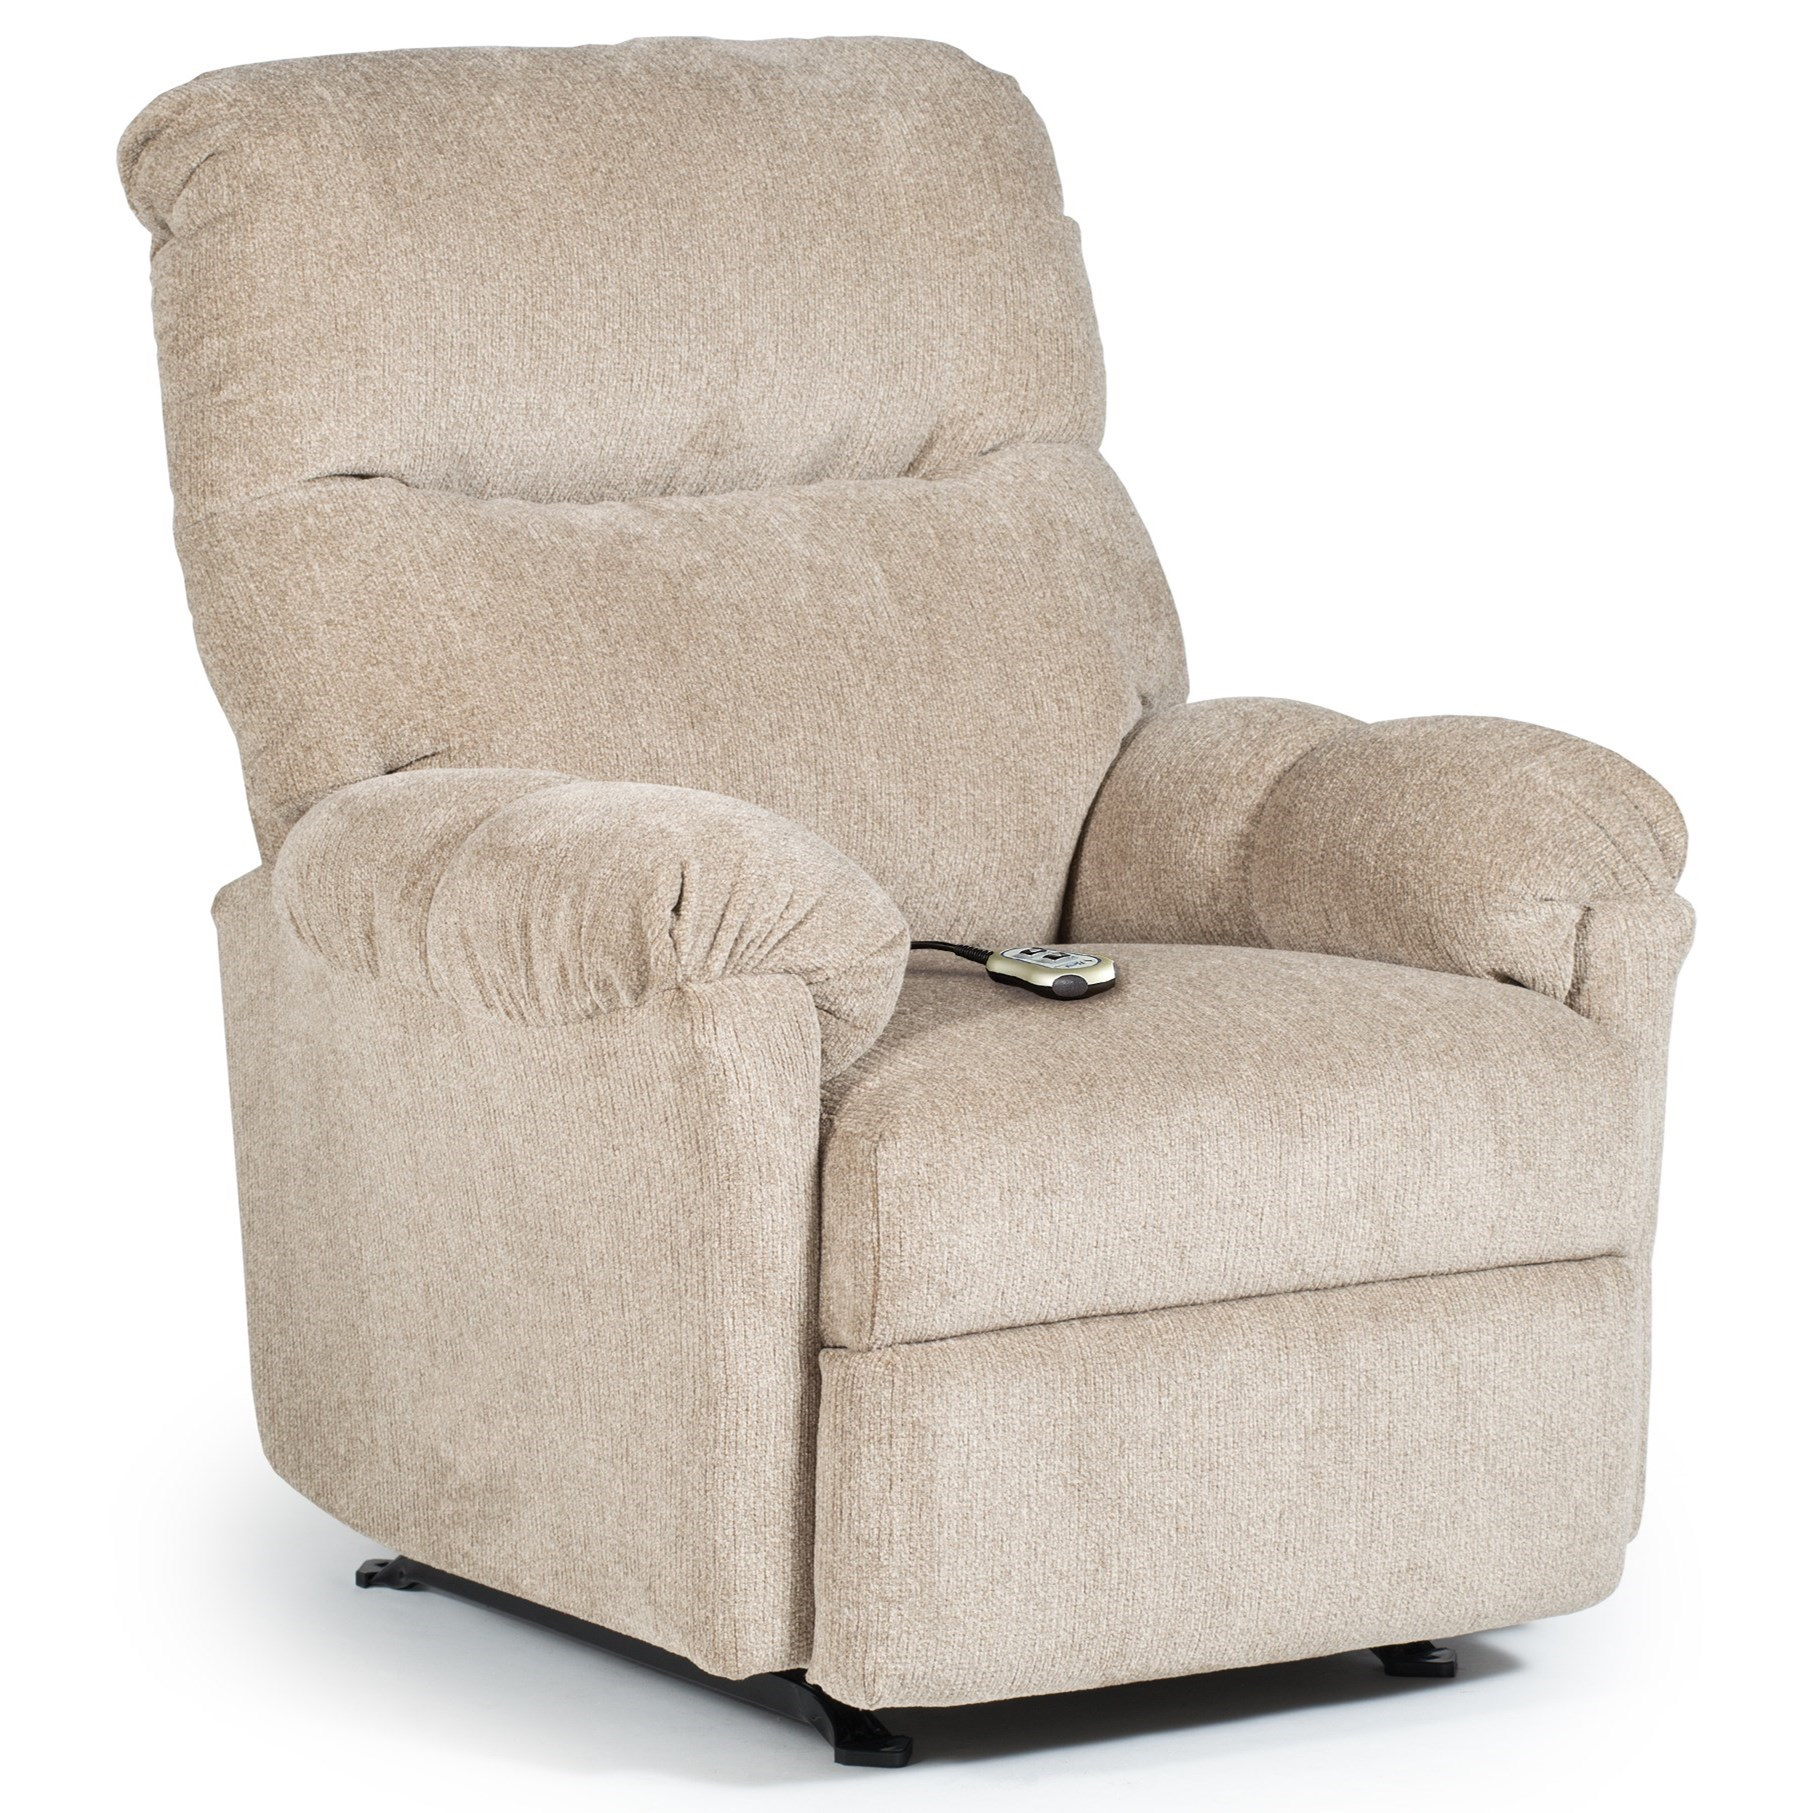 Medium Recliners Balmore Power Wallhugger Recliner by Best Home Furnishings at Best Home Furnishings